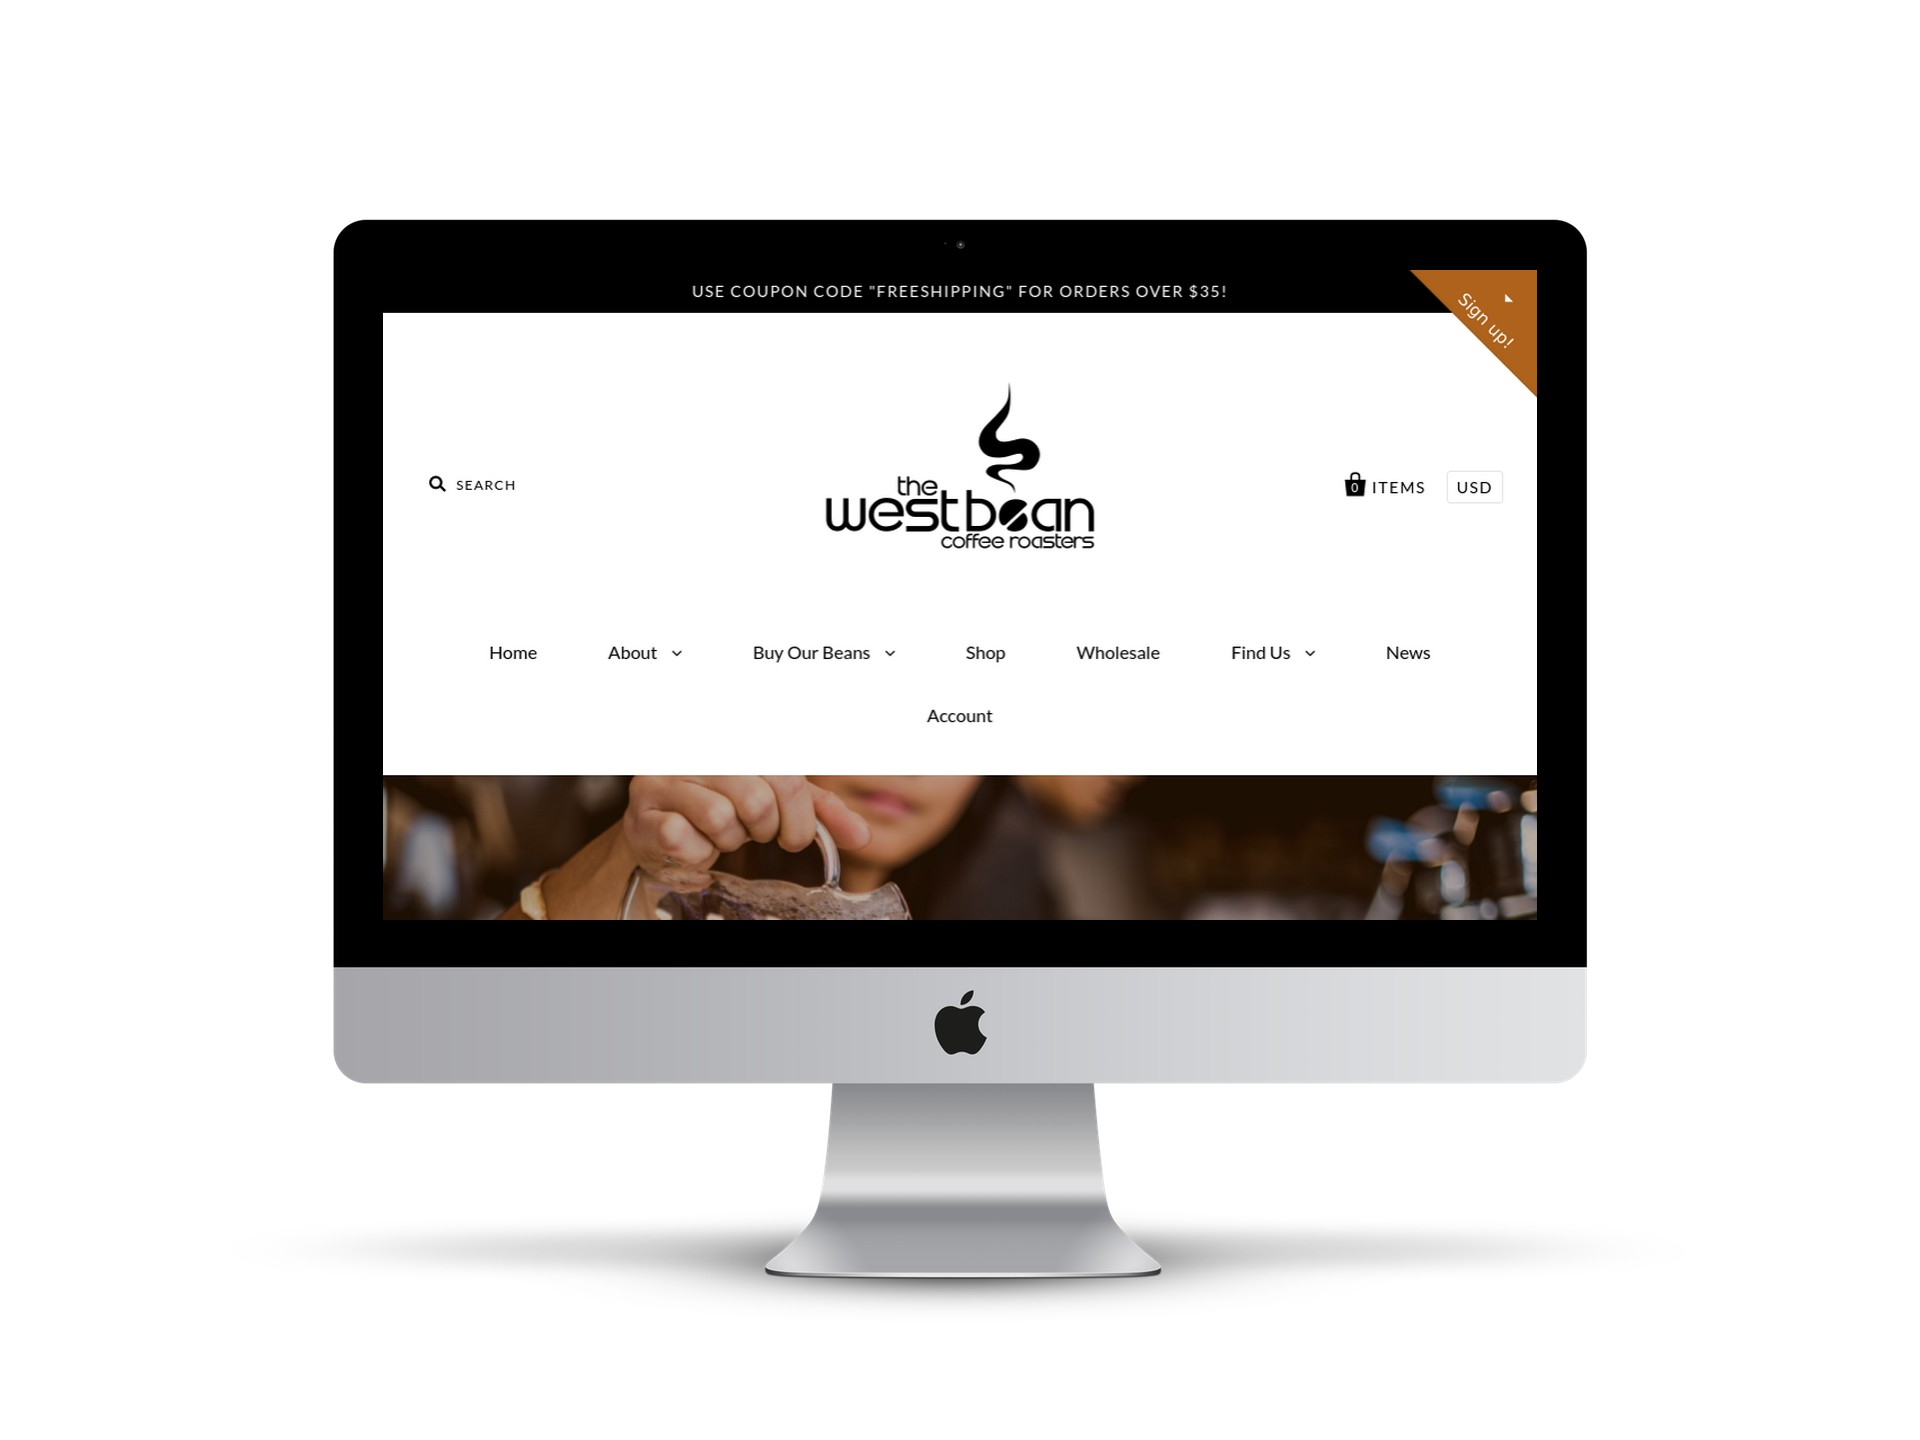 Max Pete provided Squarespace website design and development for The WestBean Coffee Roasters.